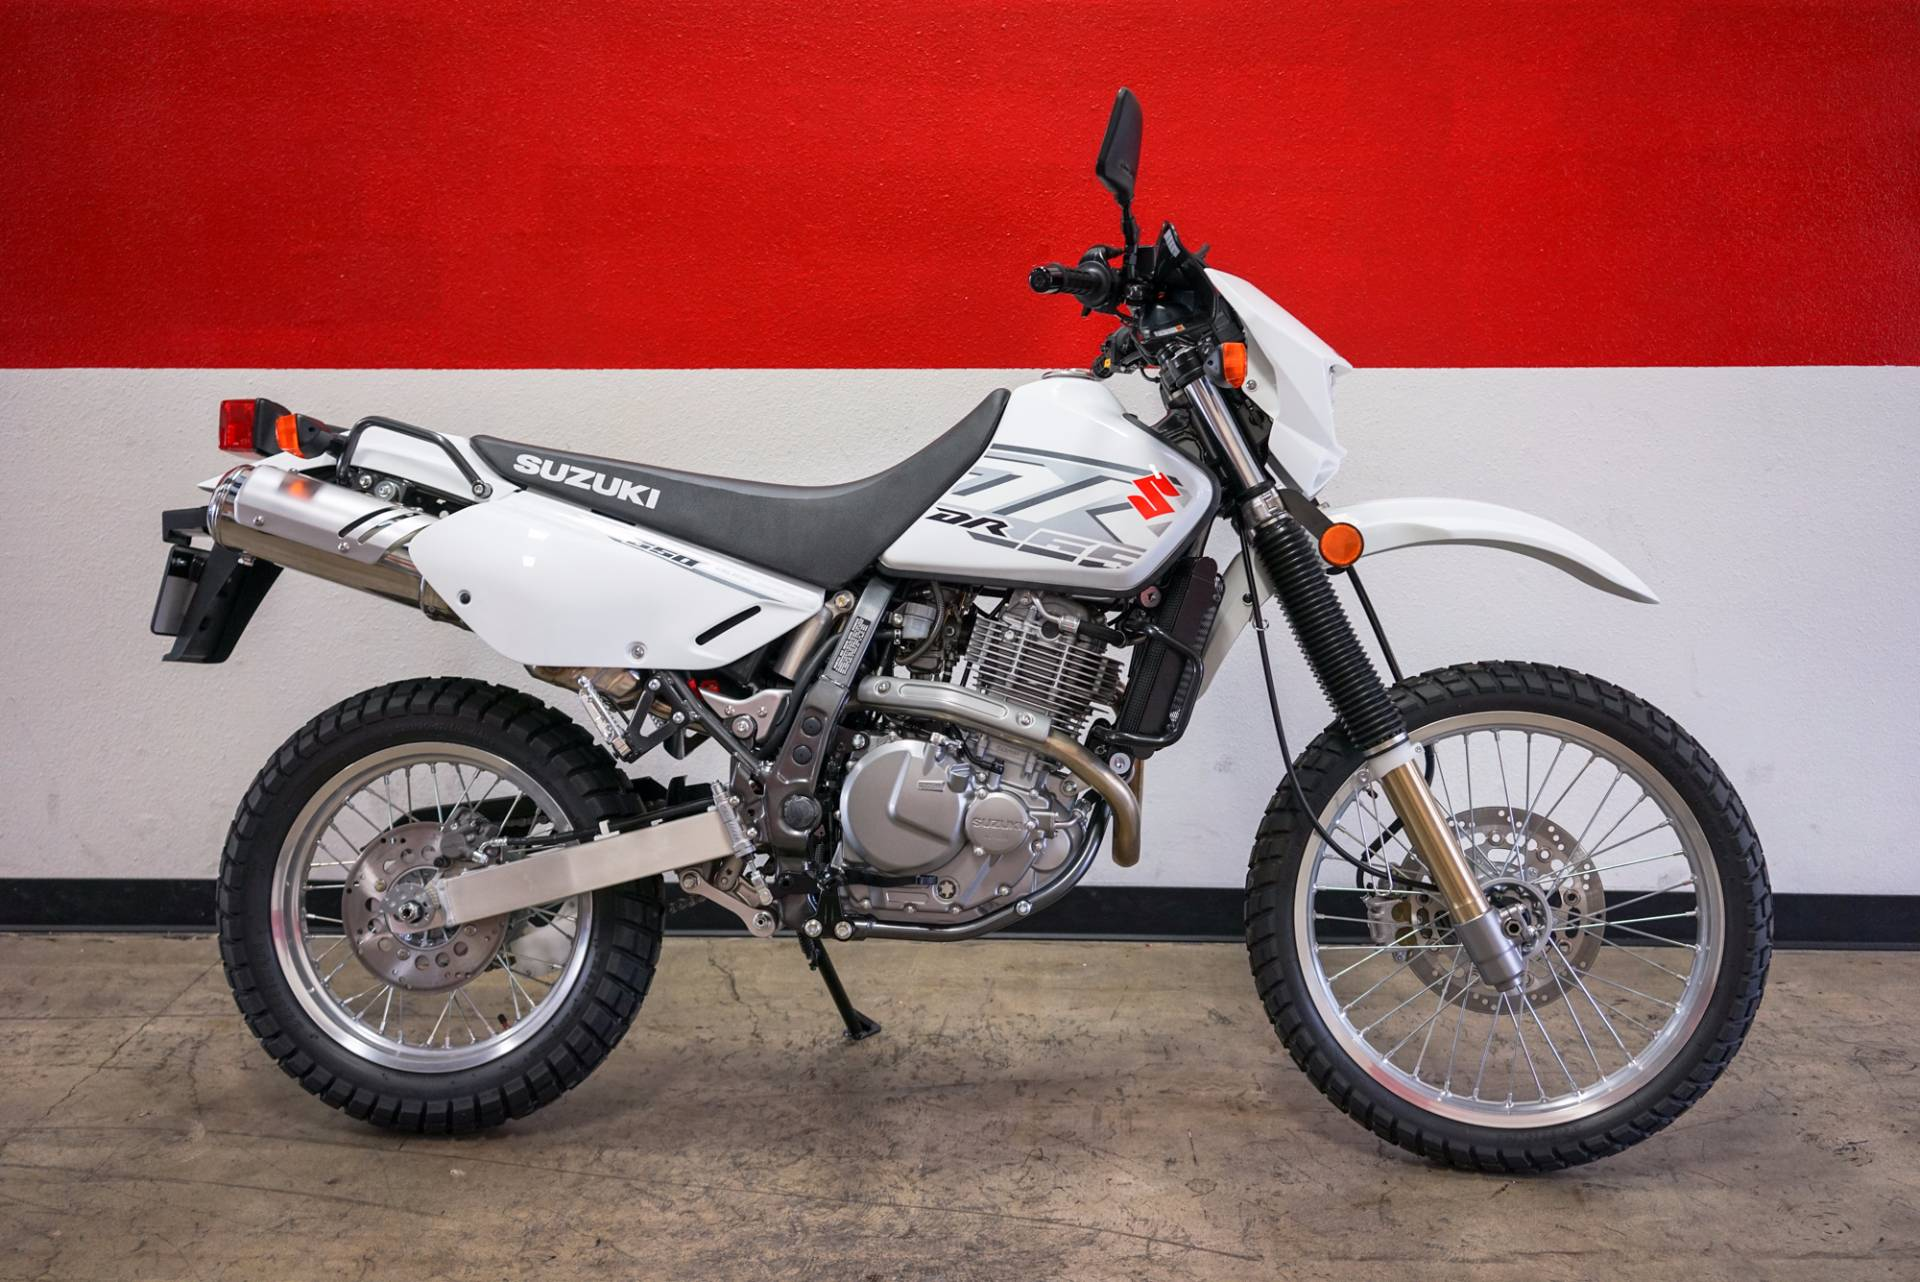 The 2018 Suzuki DR650S is quite possible the best all-around dual purpose motorcycle available to